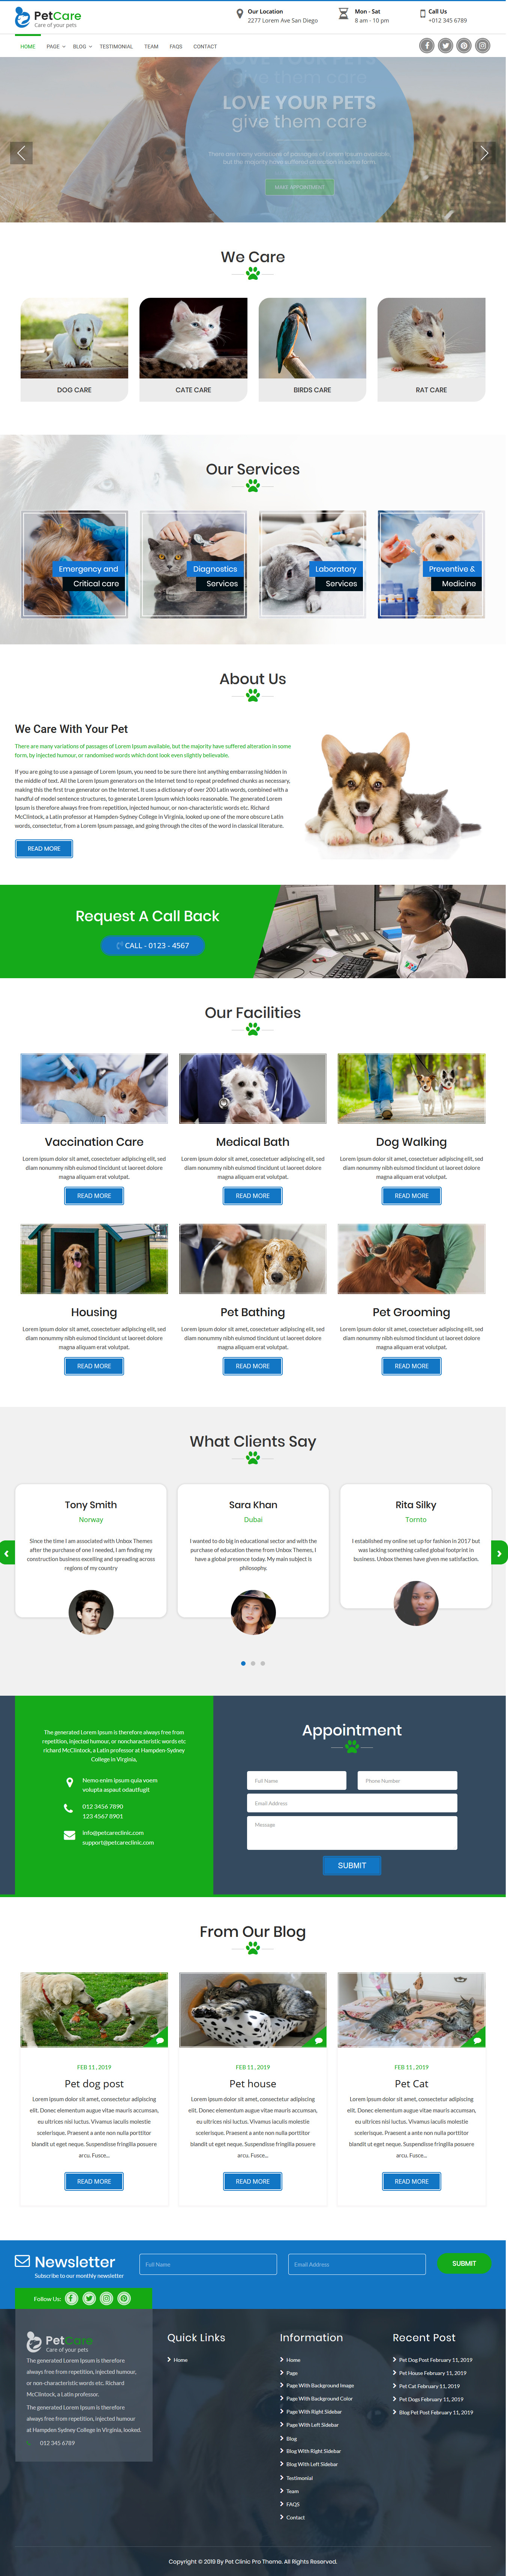 Pet Care Clinic - Best Free Animal and Pet WordPress Theme